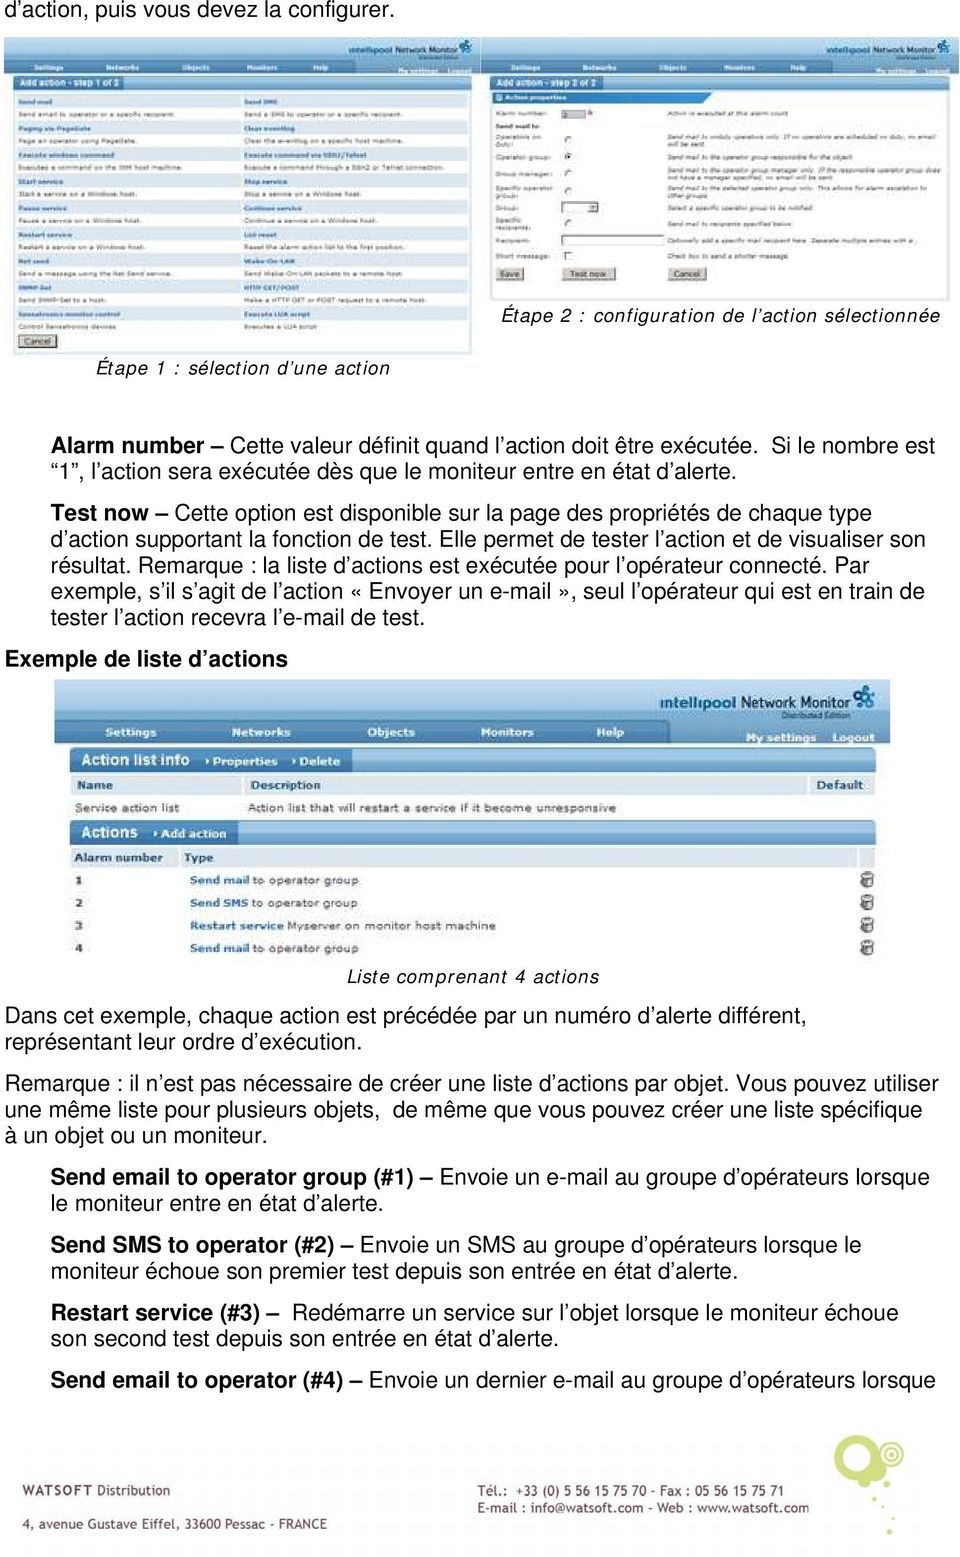 Test now Cette option est disponible sur la page des propriétés de chaque type d action supportant la fonction de test. Elle permet de tester l action et de visualiser son résultat.